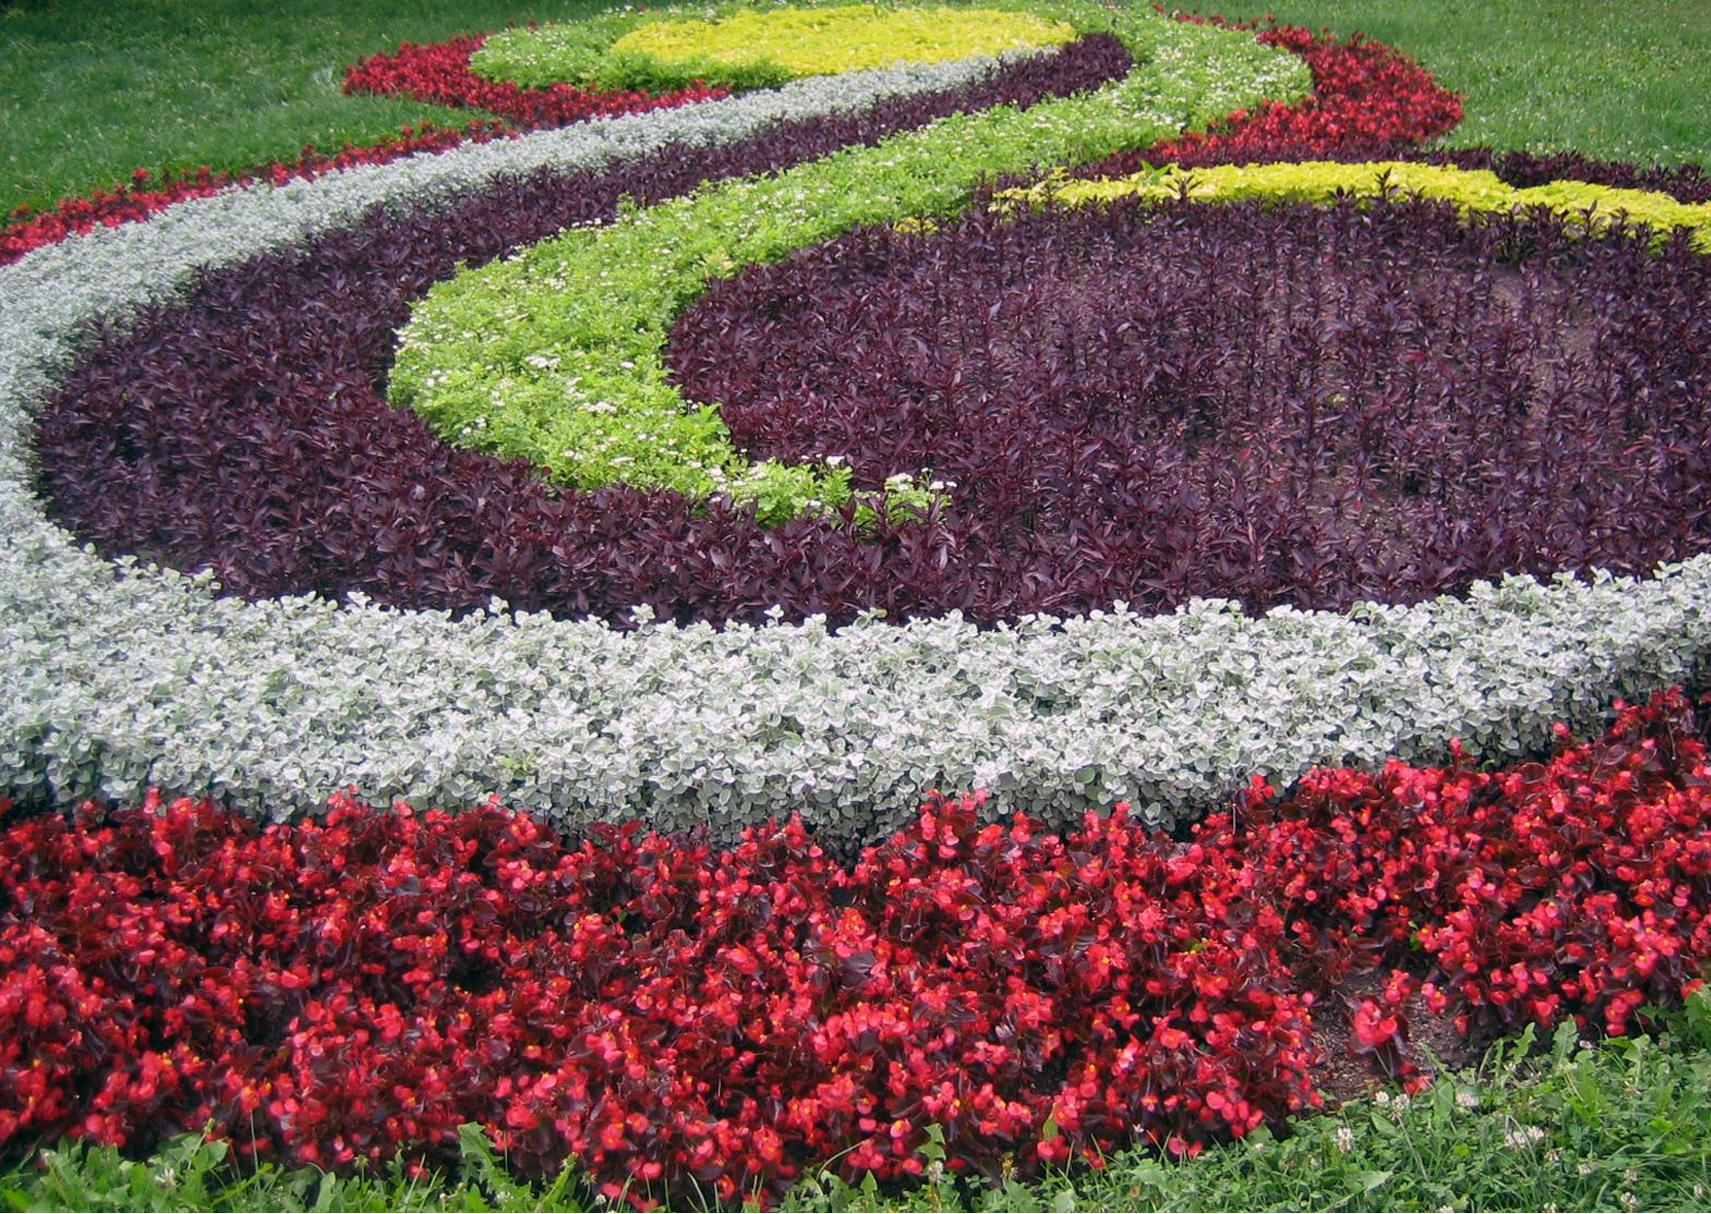 The diy beautiful flower bed designs and plans for your for Beautiful flower beds